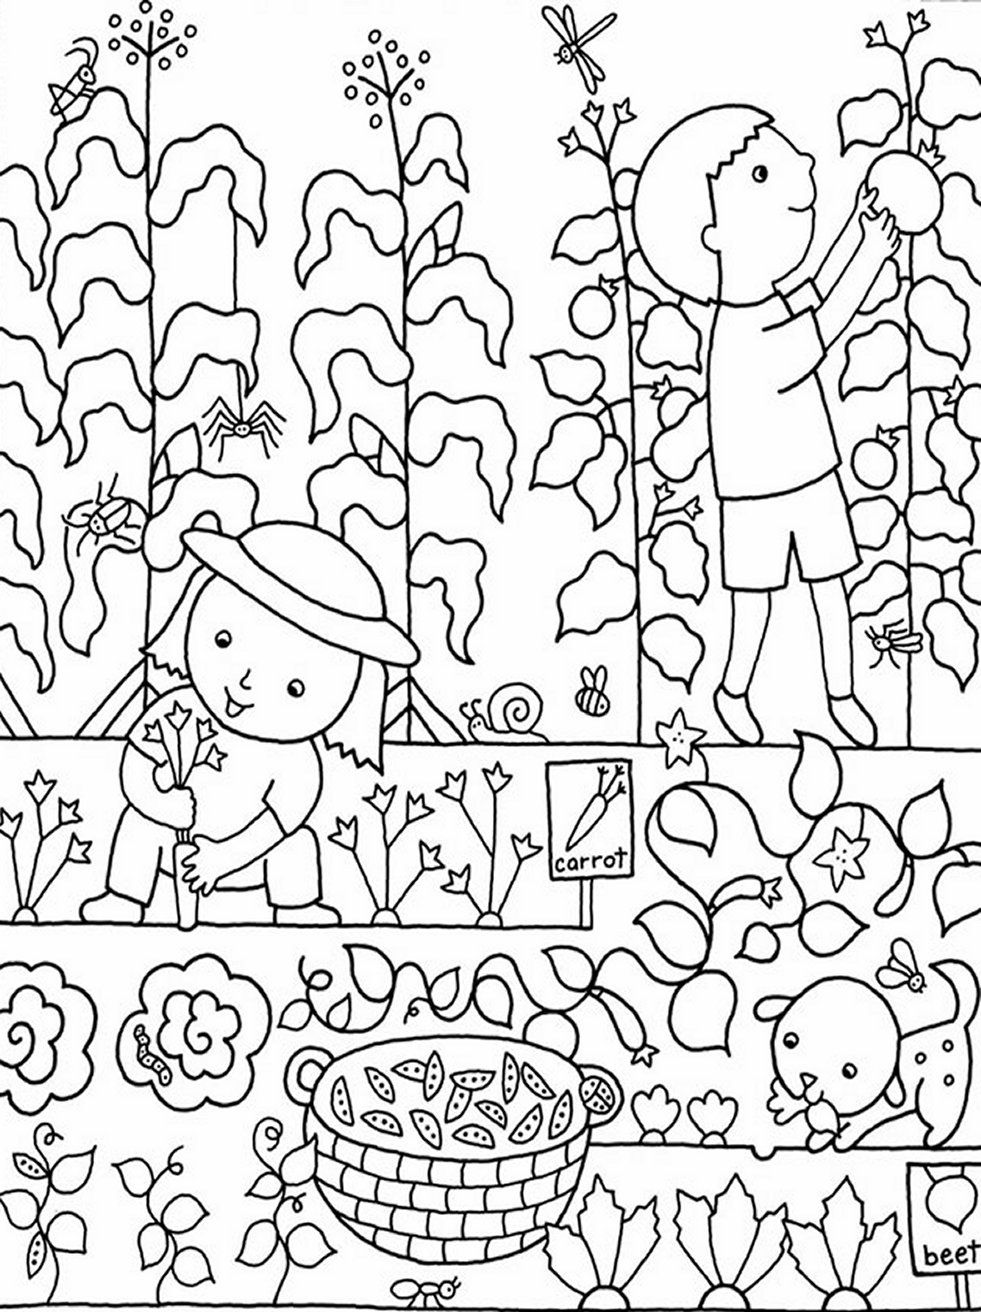 garden colouring pages for kids gardening coloring pages to download and print for free pages kids colouring garden for